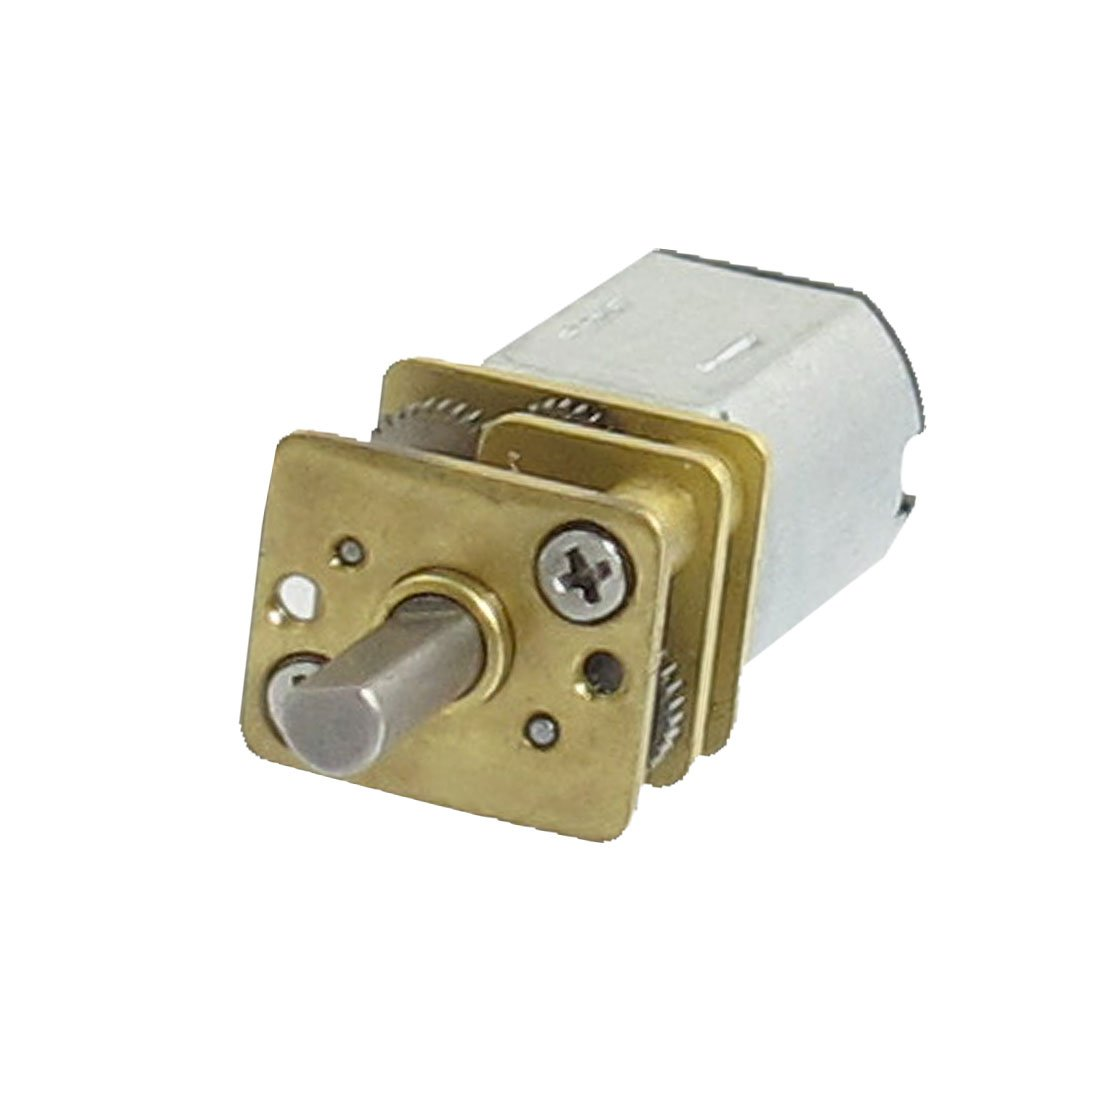 Uxcell a12120600ux0191 DC 6V 60 RPM High Torque Electric Replacement Gear Box Motor